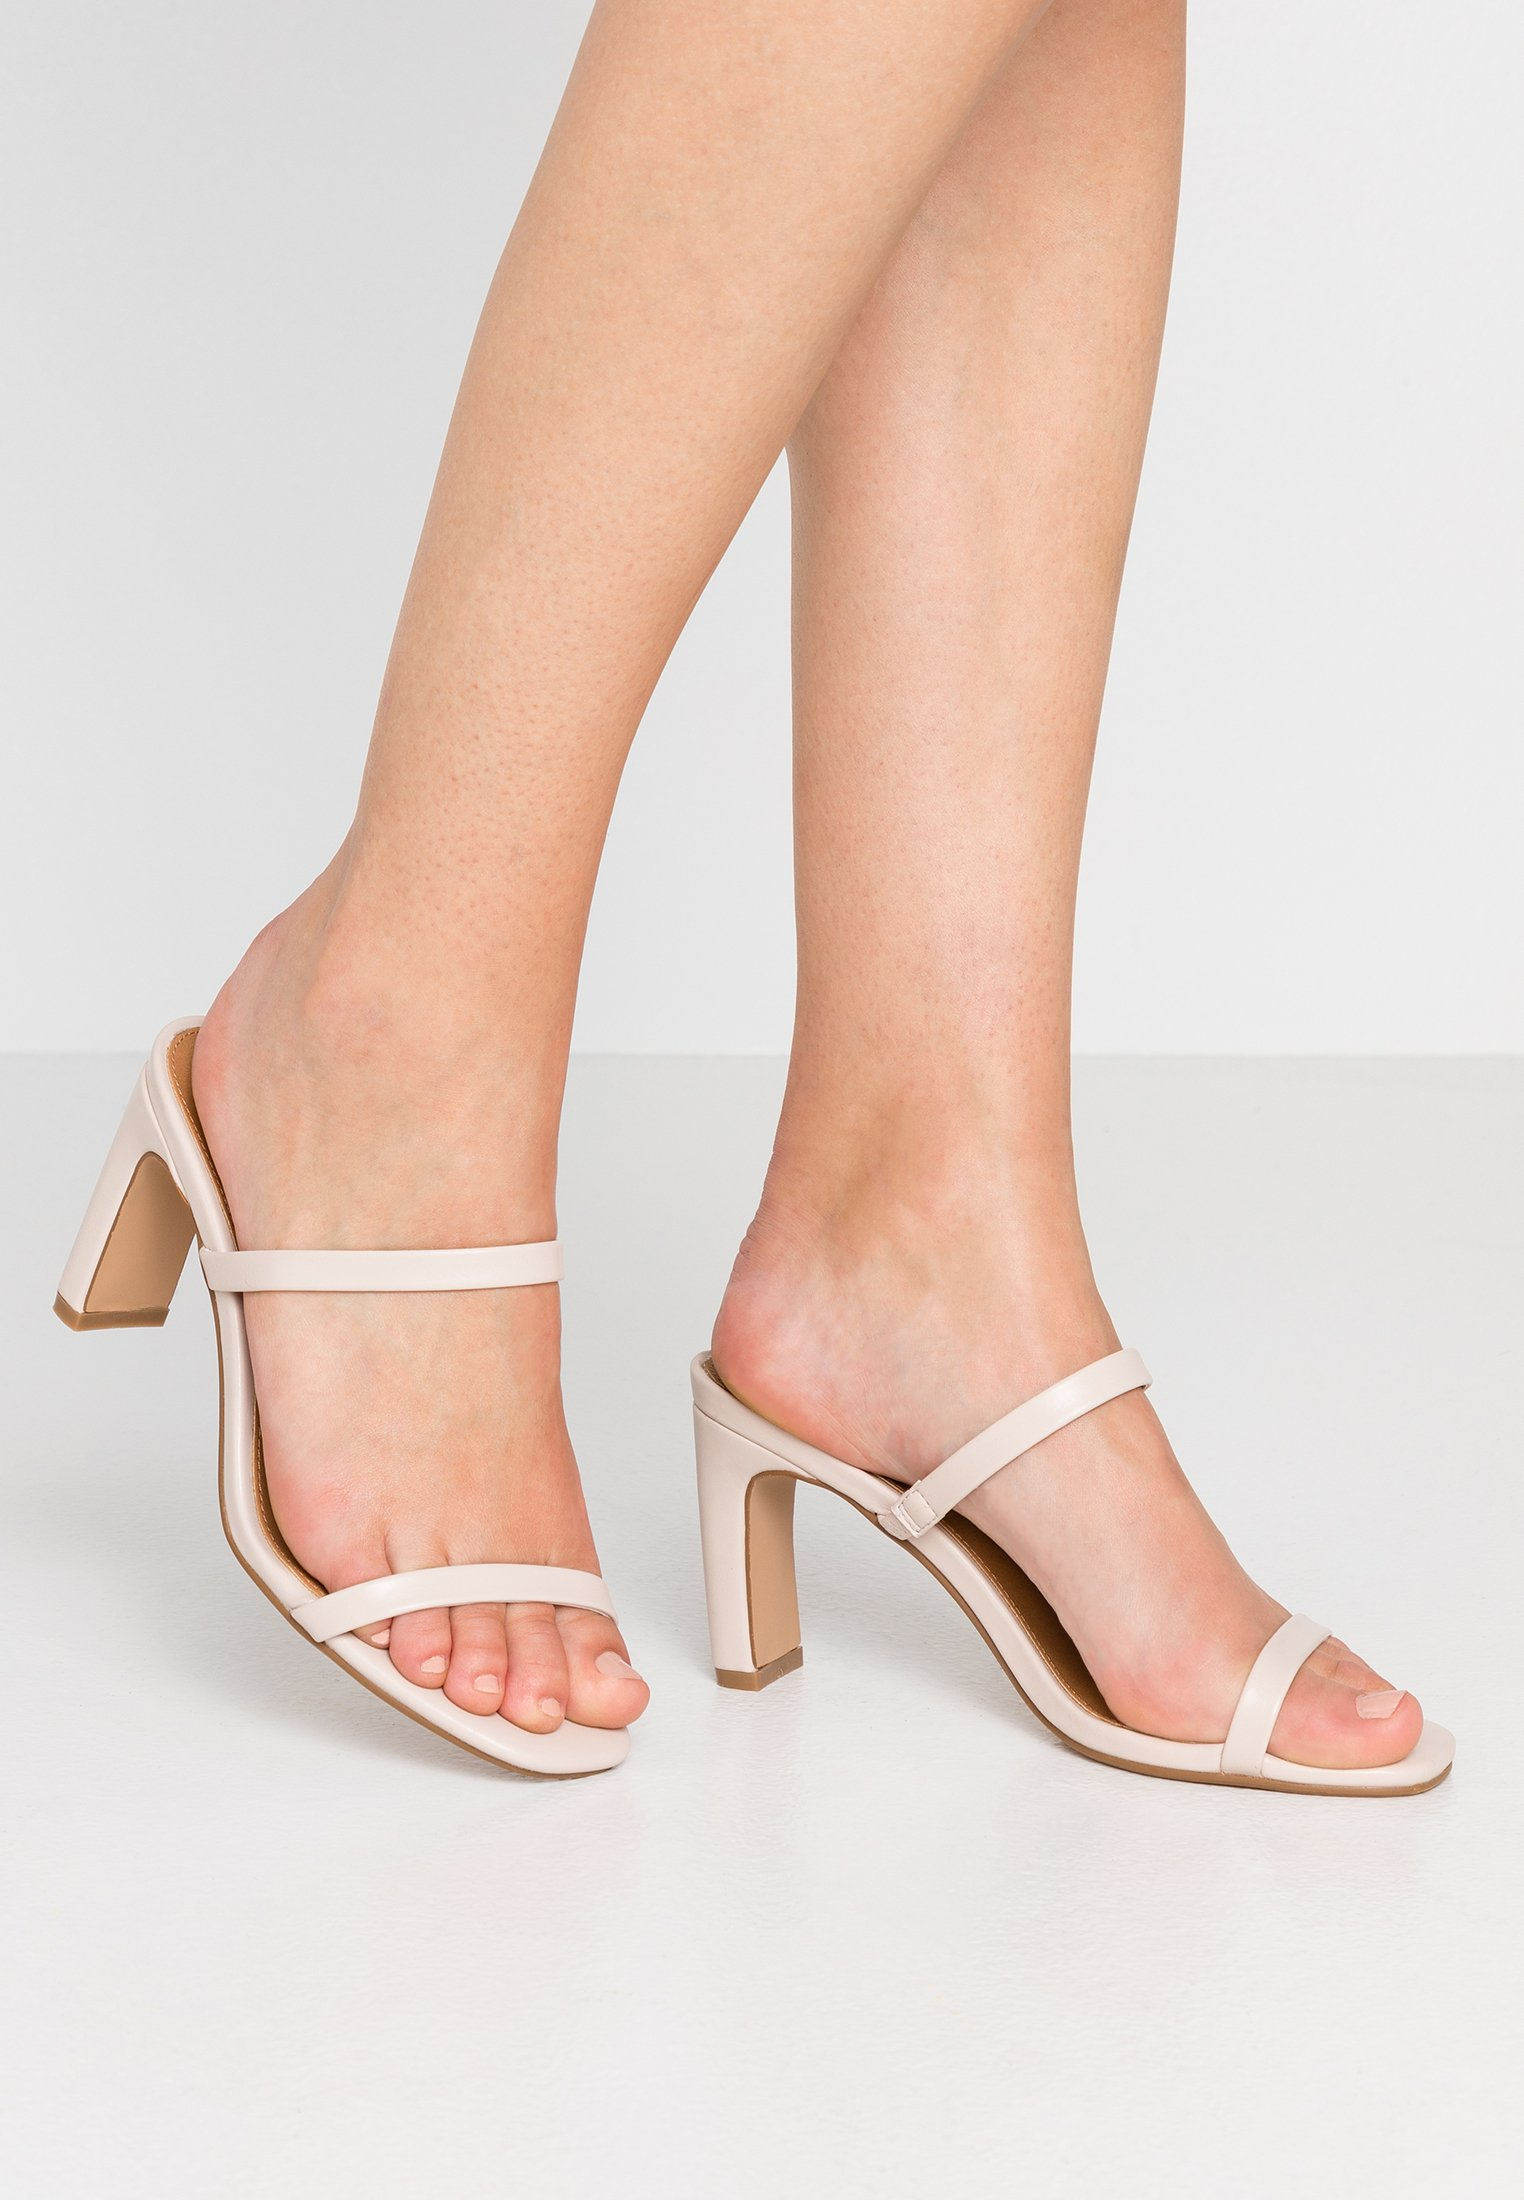 Nude Rubi Cotton On MuleCiabattine Lennox By Shoes W2EYIDH9